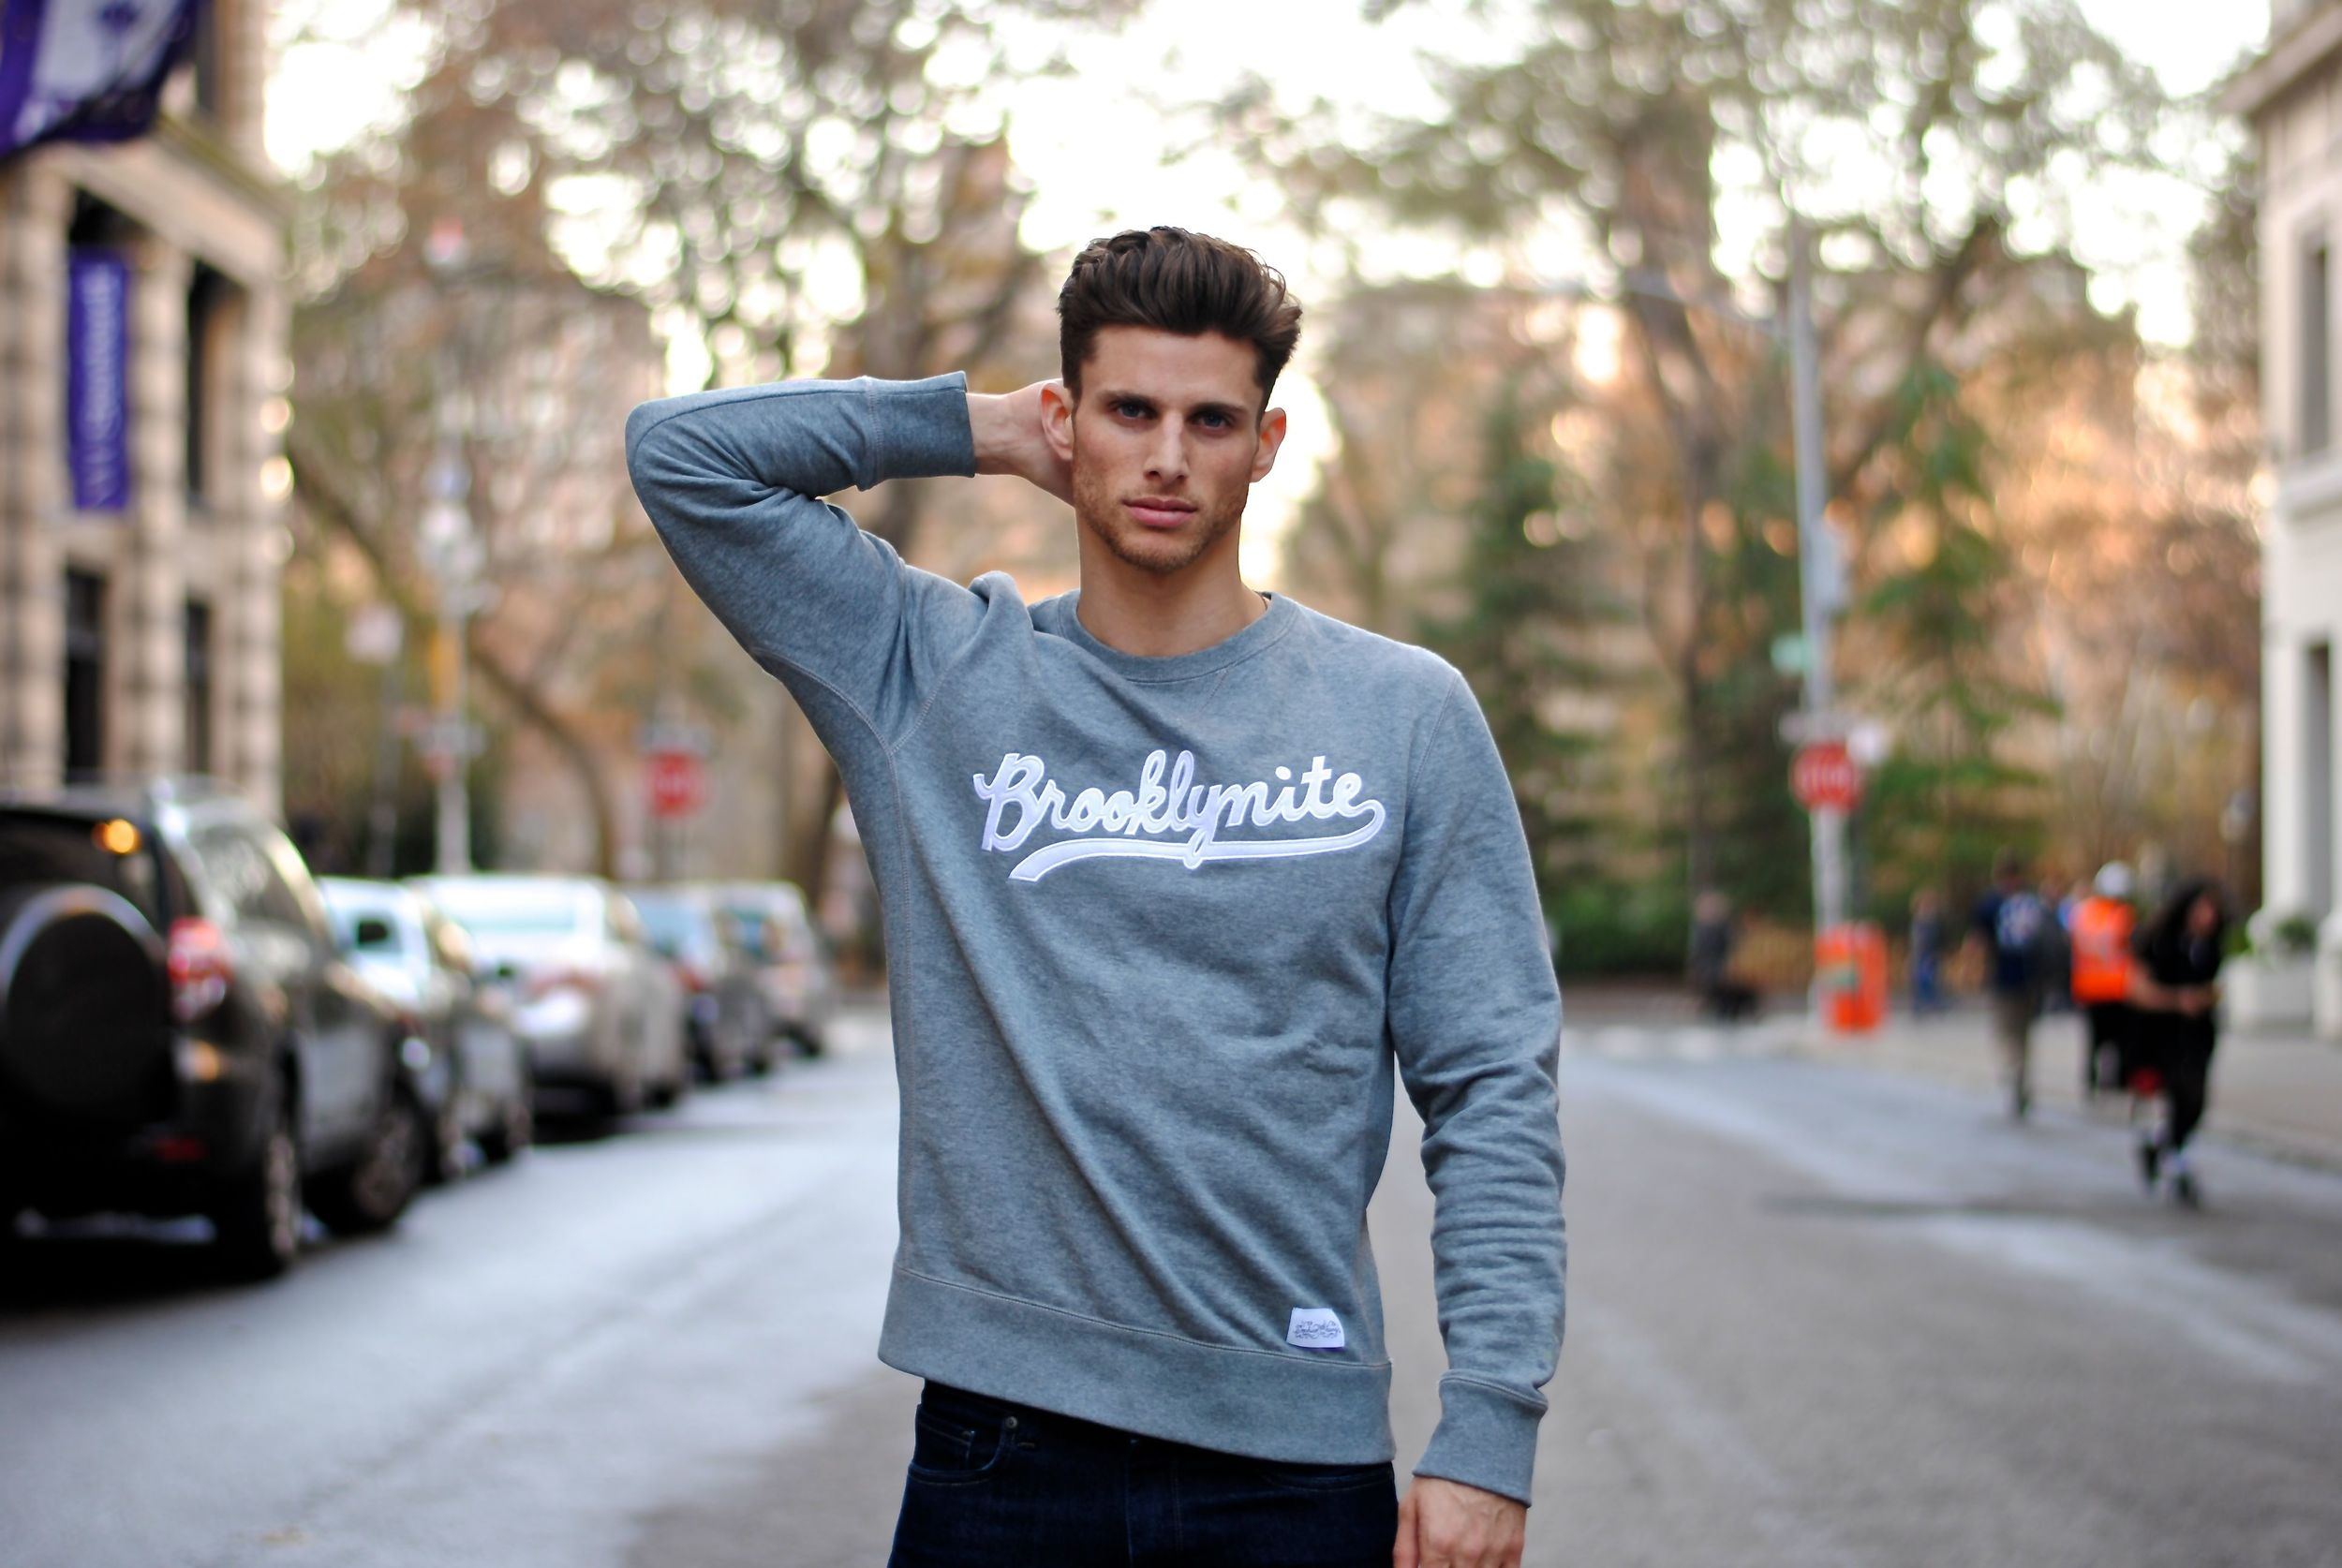 Brooklynite Grey Sweatshirt by Sophia Chang for PUMA